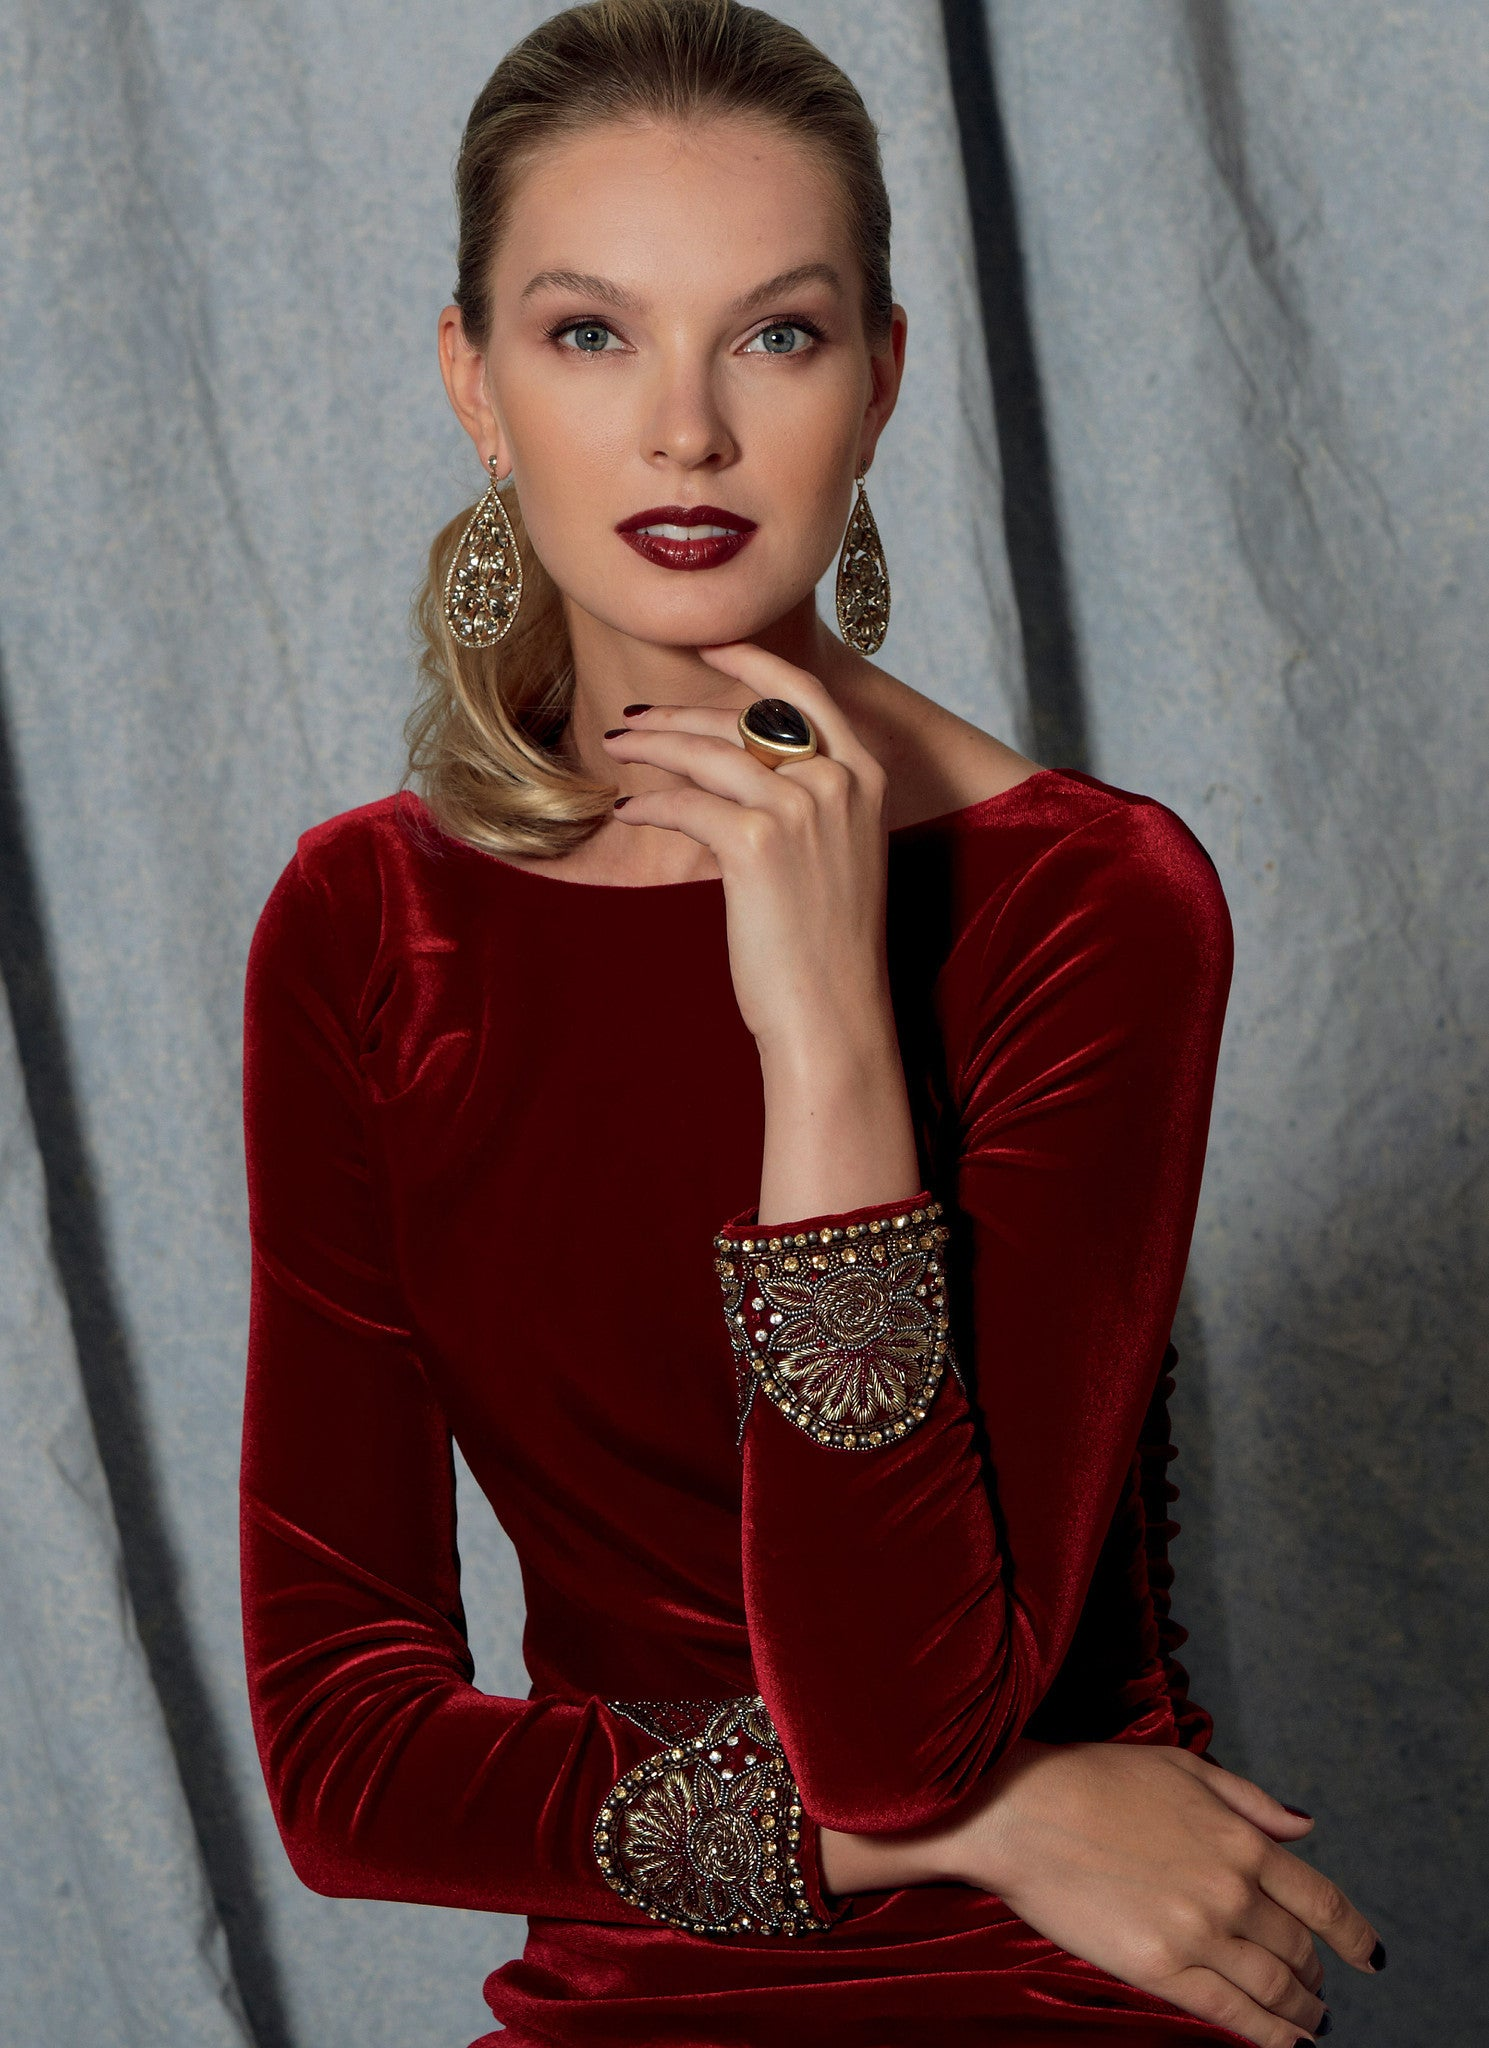 V1520 Misses' Side-Gathered, Long Sleeve Dress, Beaded Cuffs